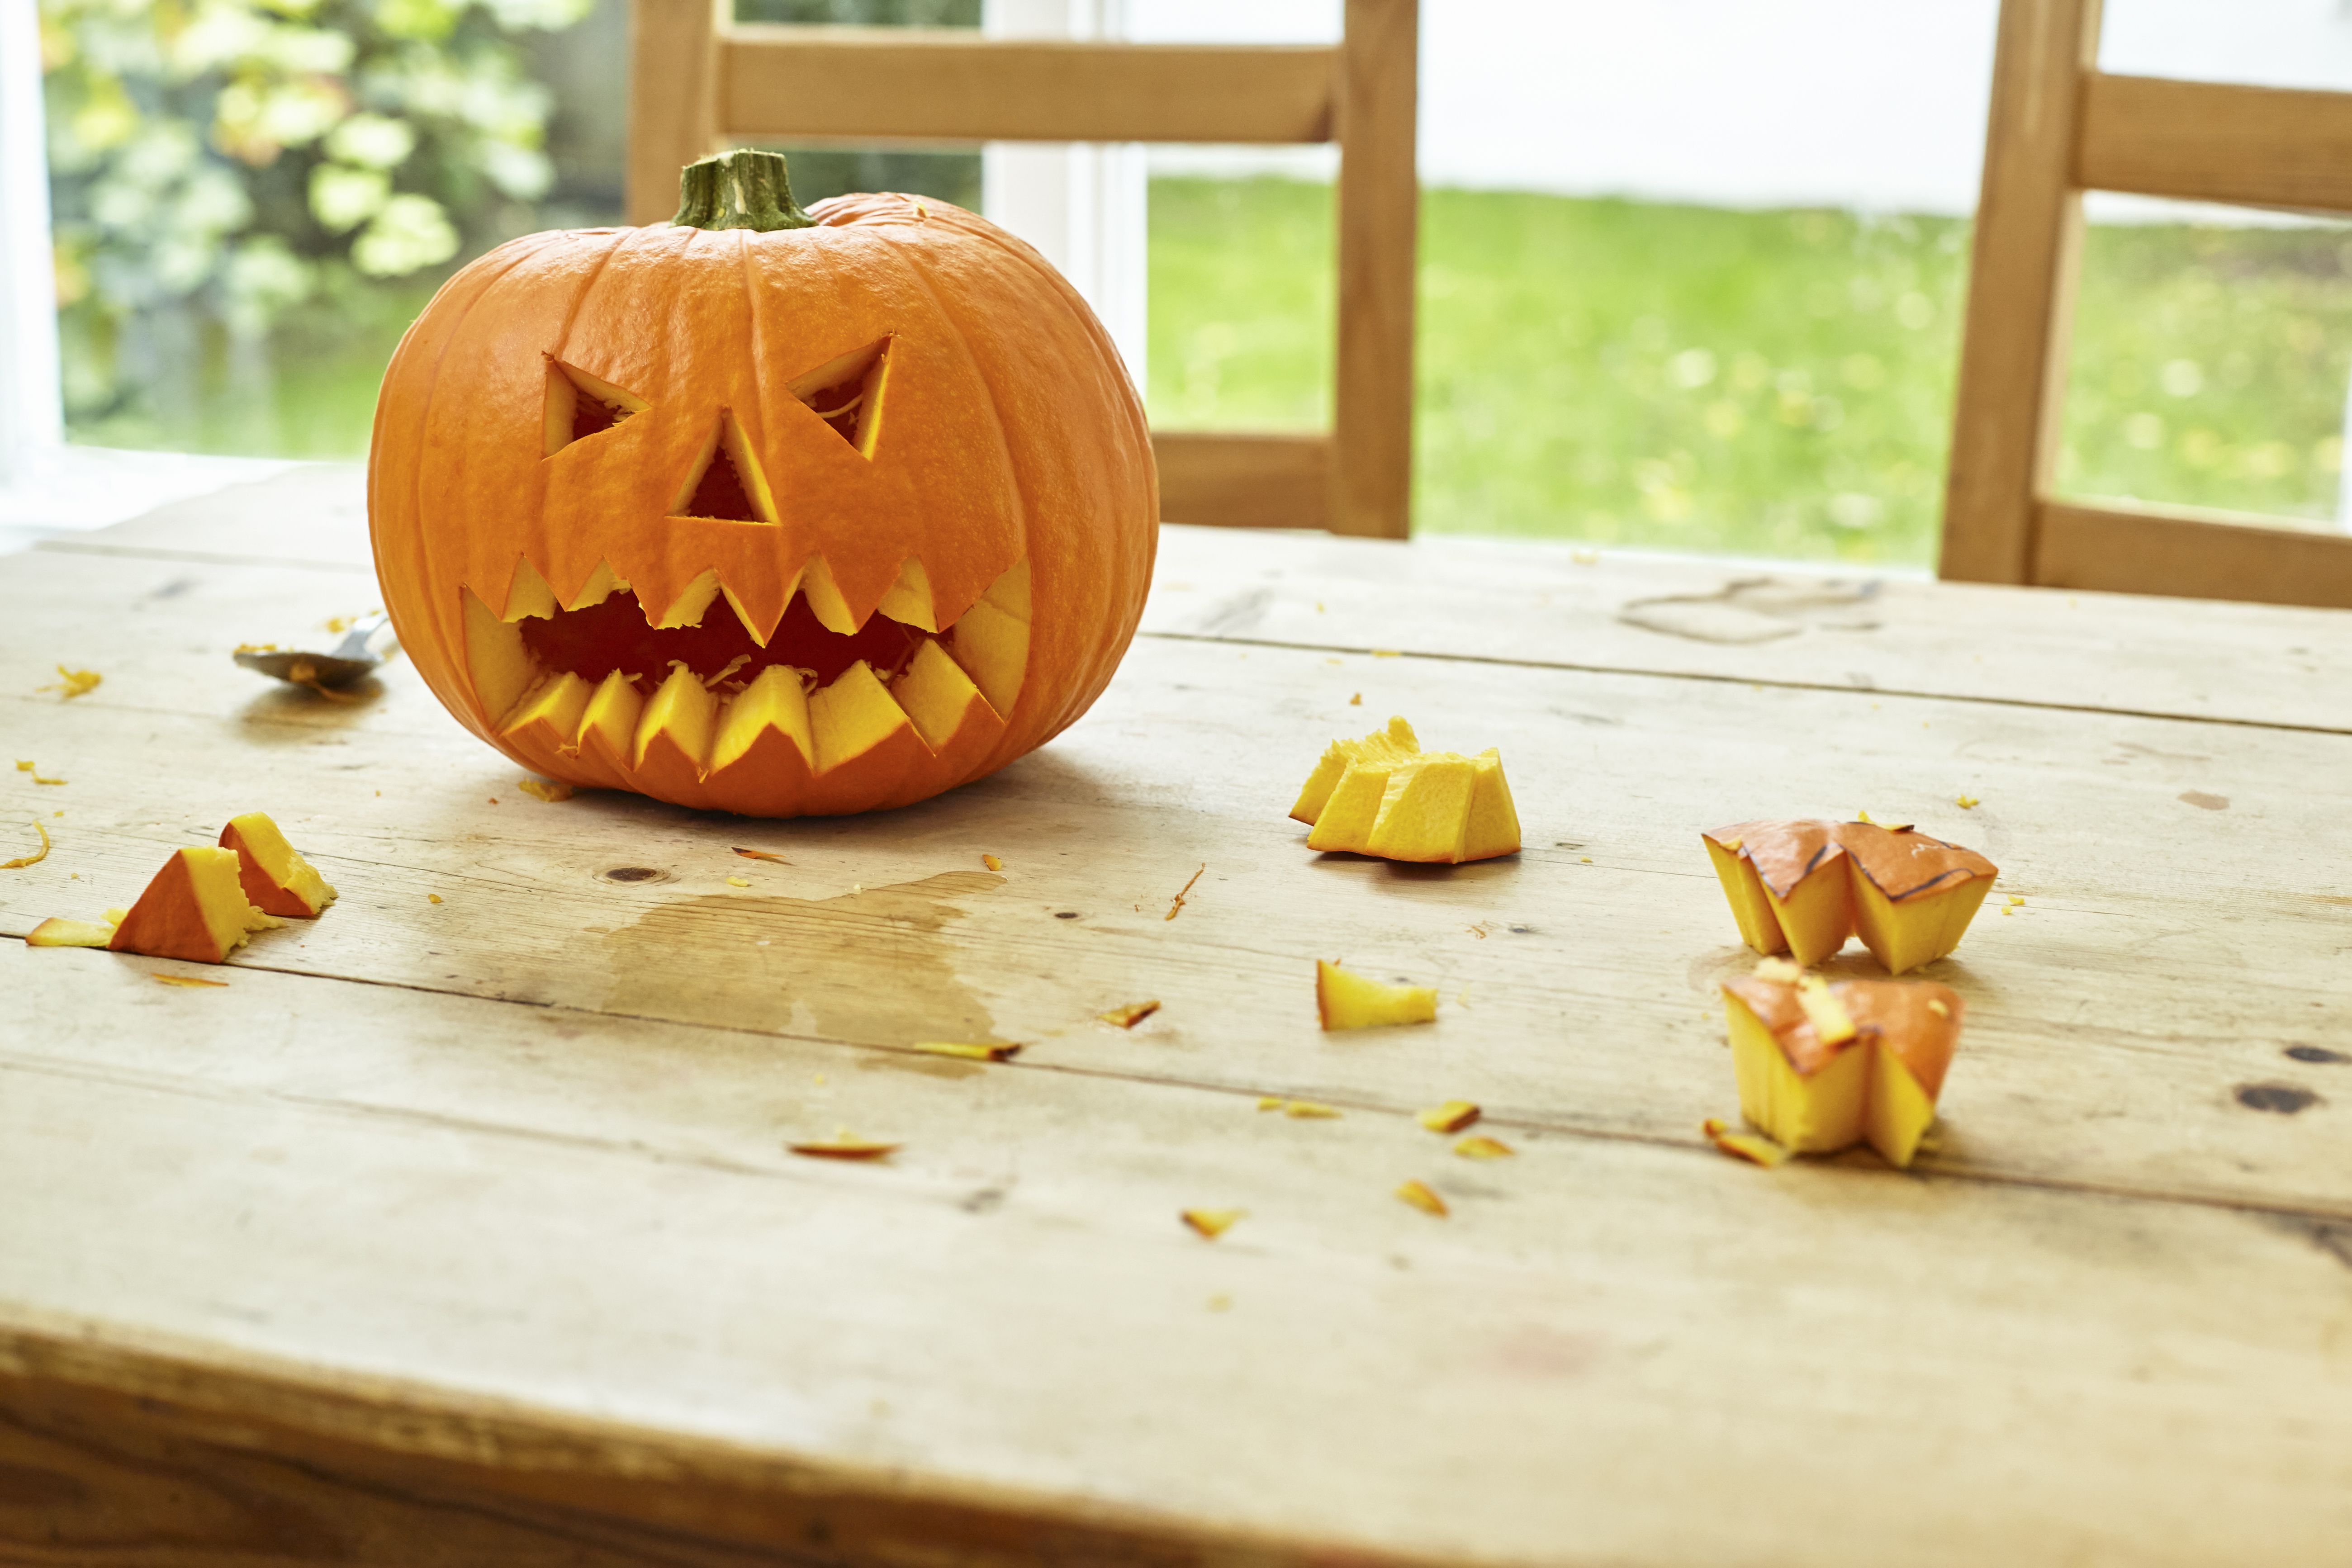 The self-carving pumpkin demonstration involves carving a jack-o-lantern face with chemistry.